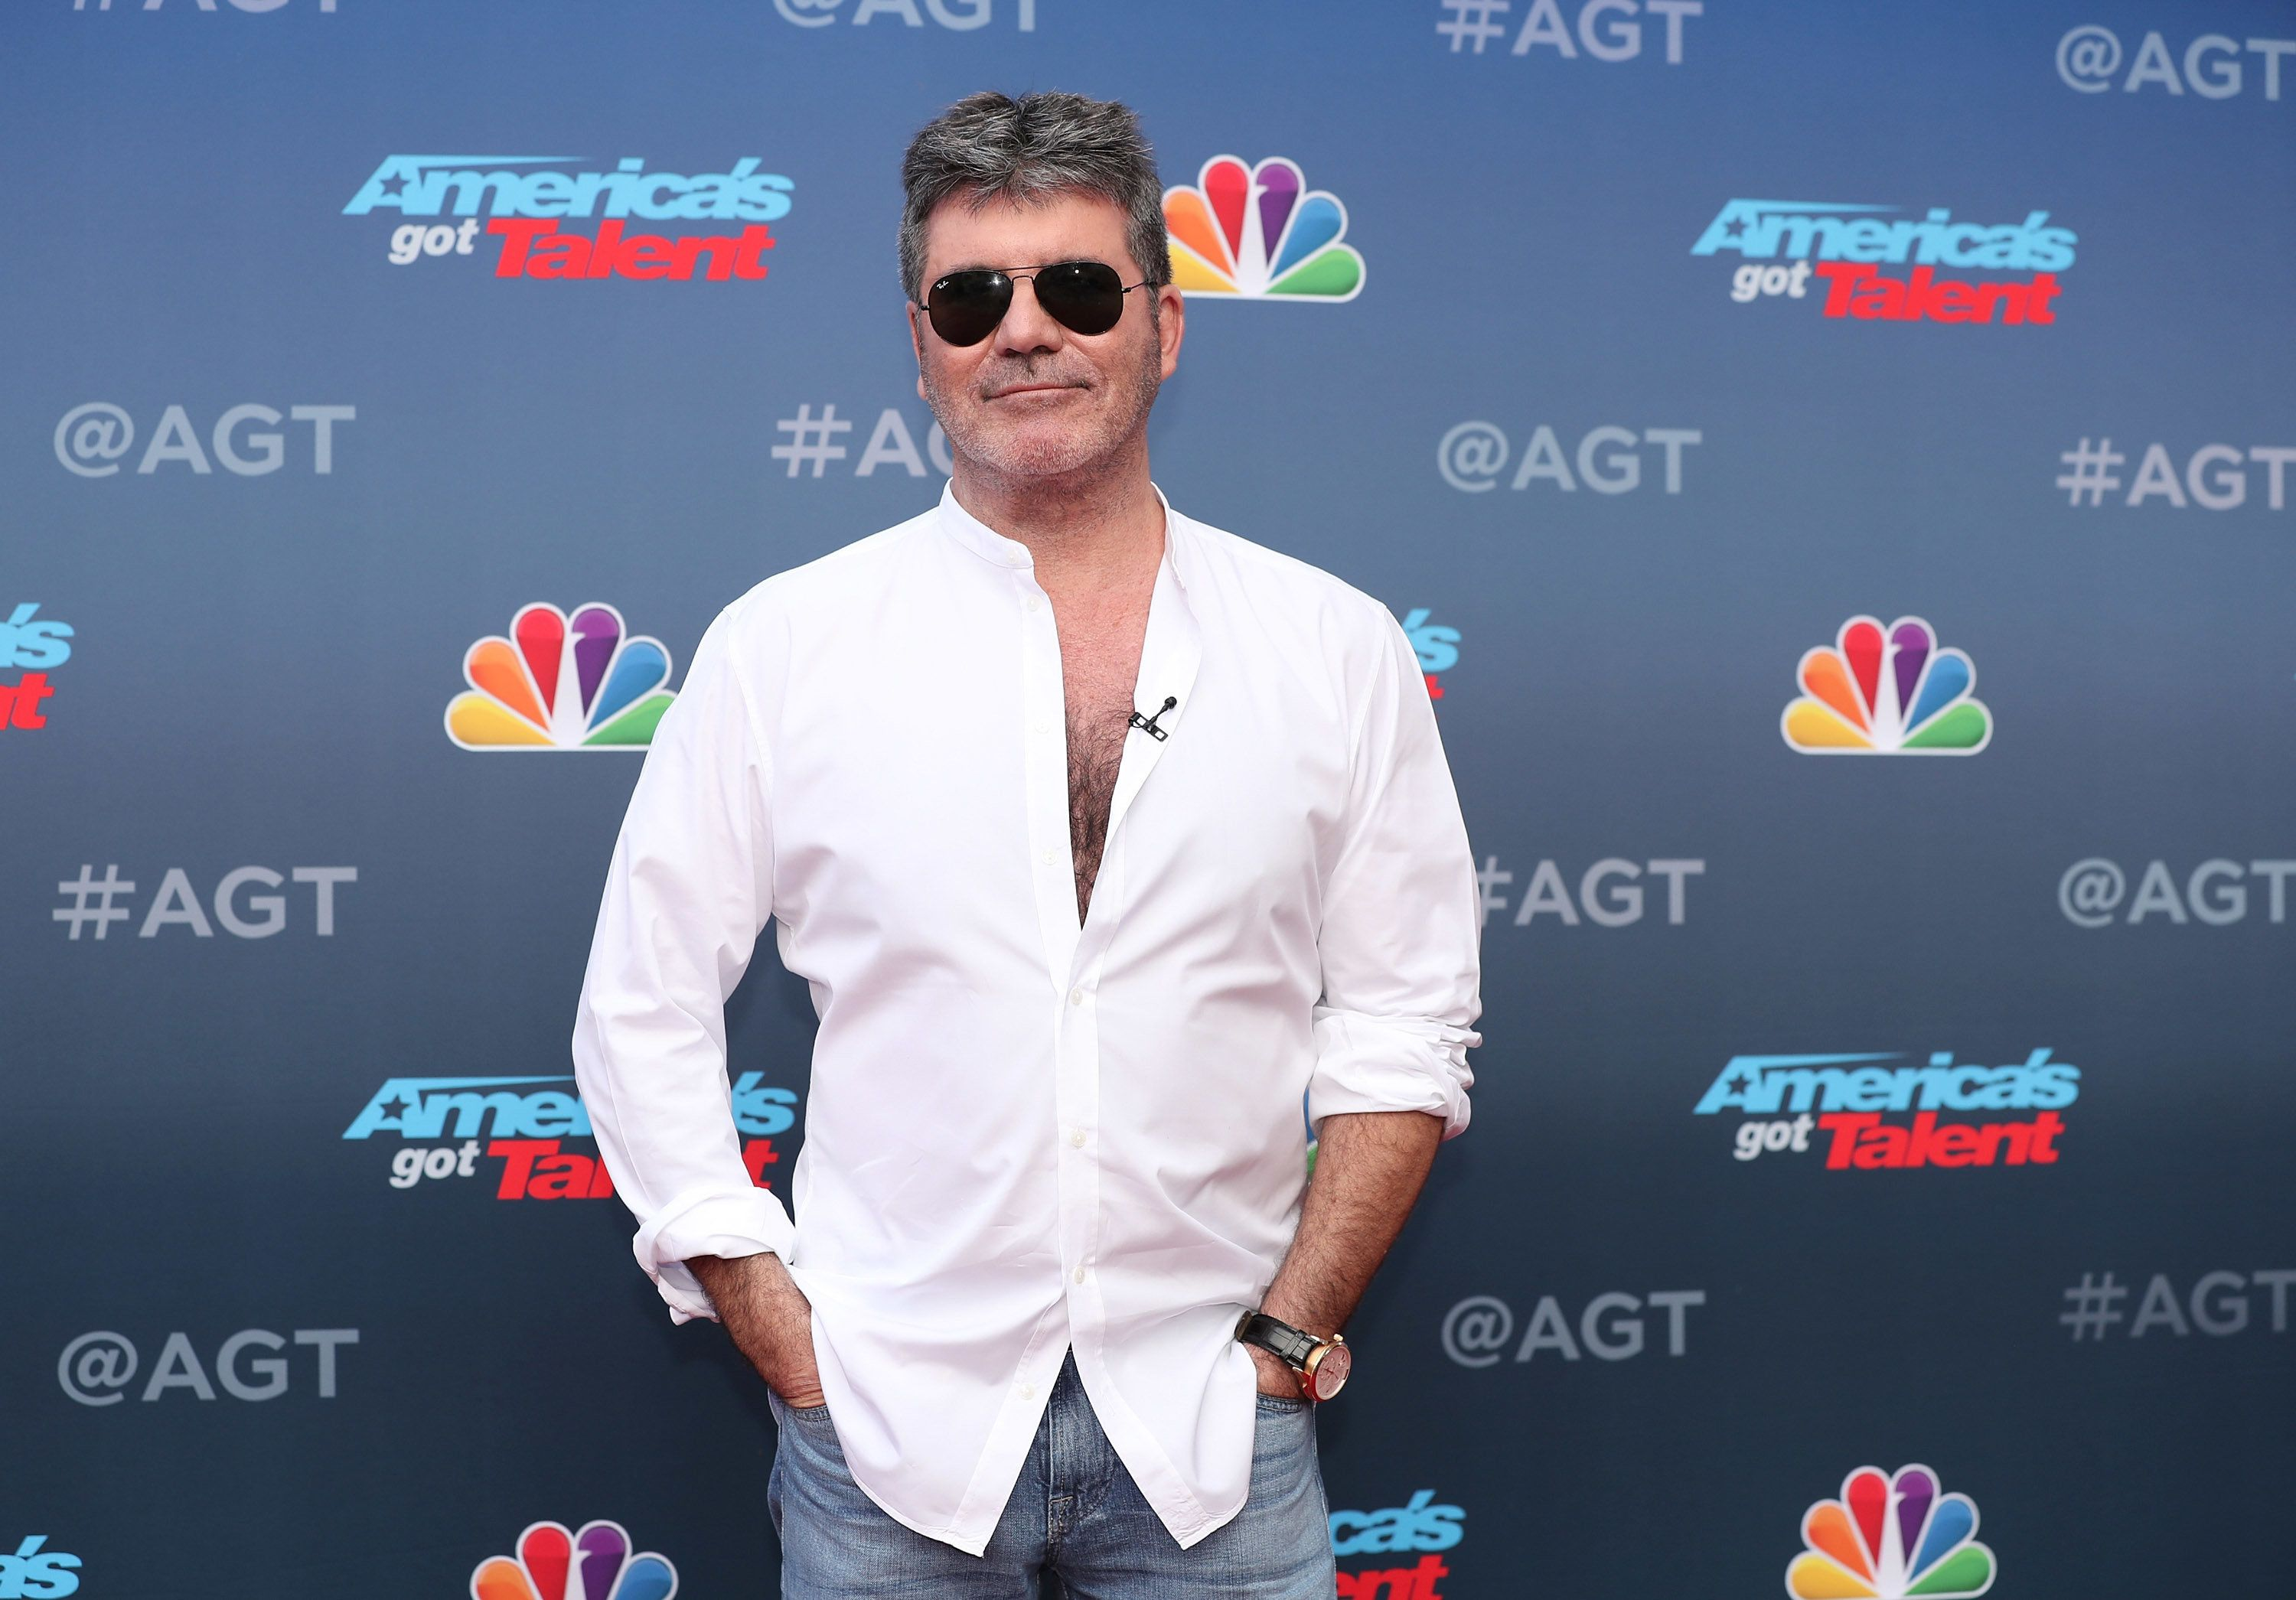 Simon Cowell Makes The Jump To BBC For His Latest TV Project, 'The Greatest